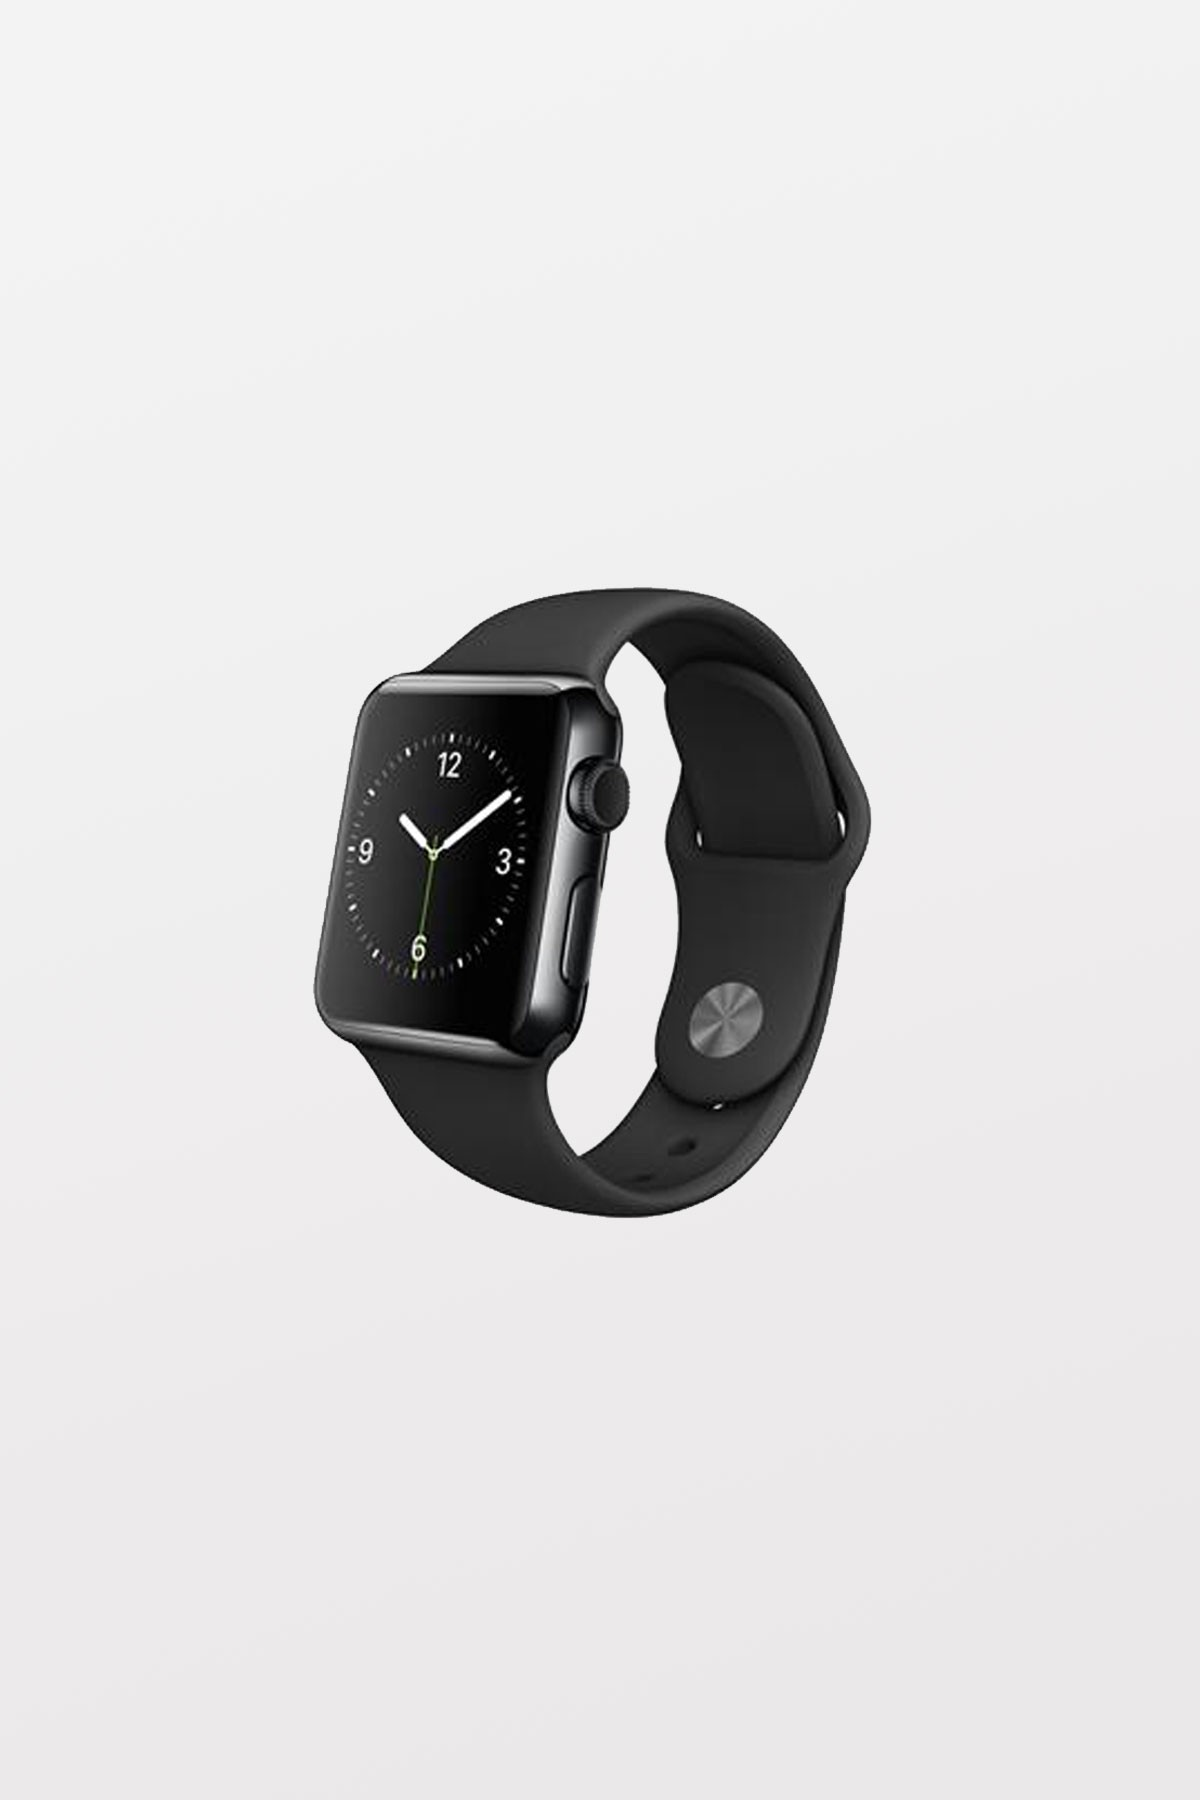 Apple Watch 38mm - Stainless Steel - Space Grey - Black Sport Band